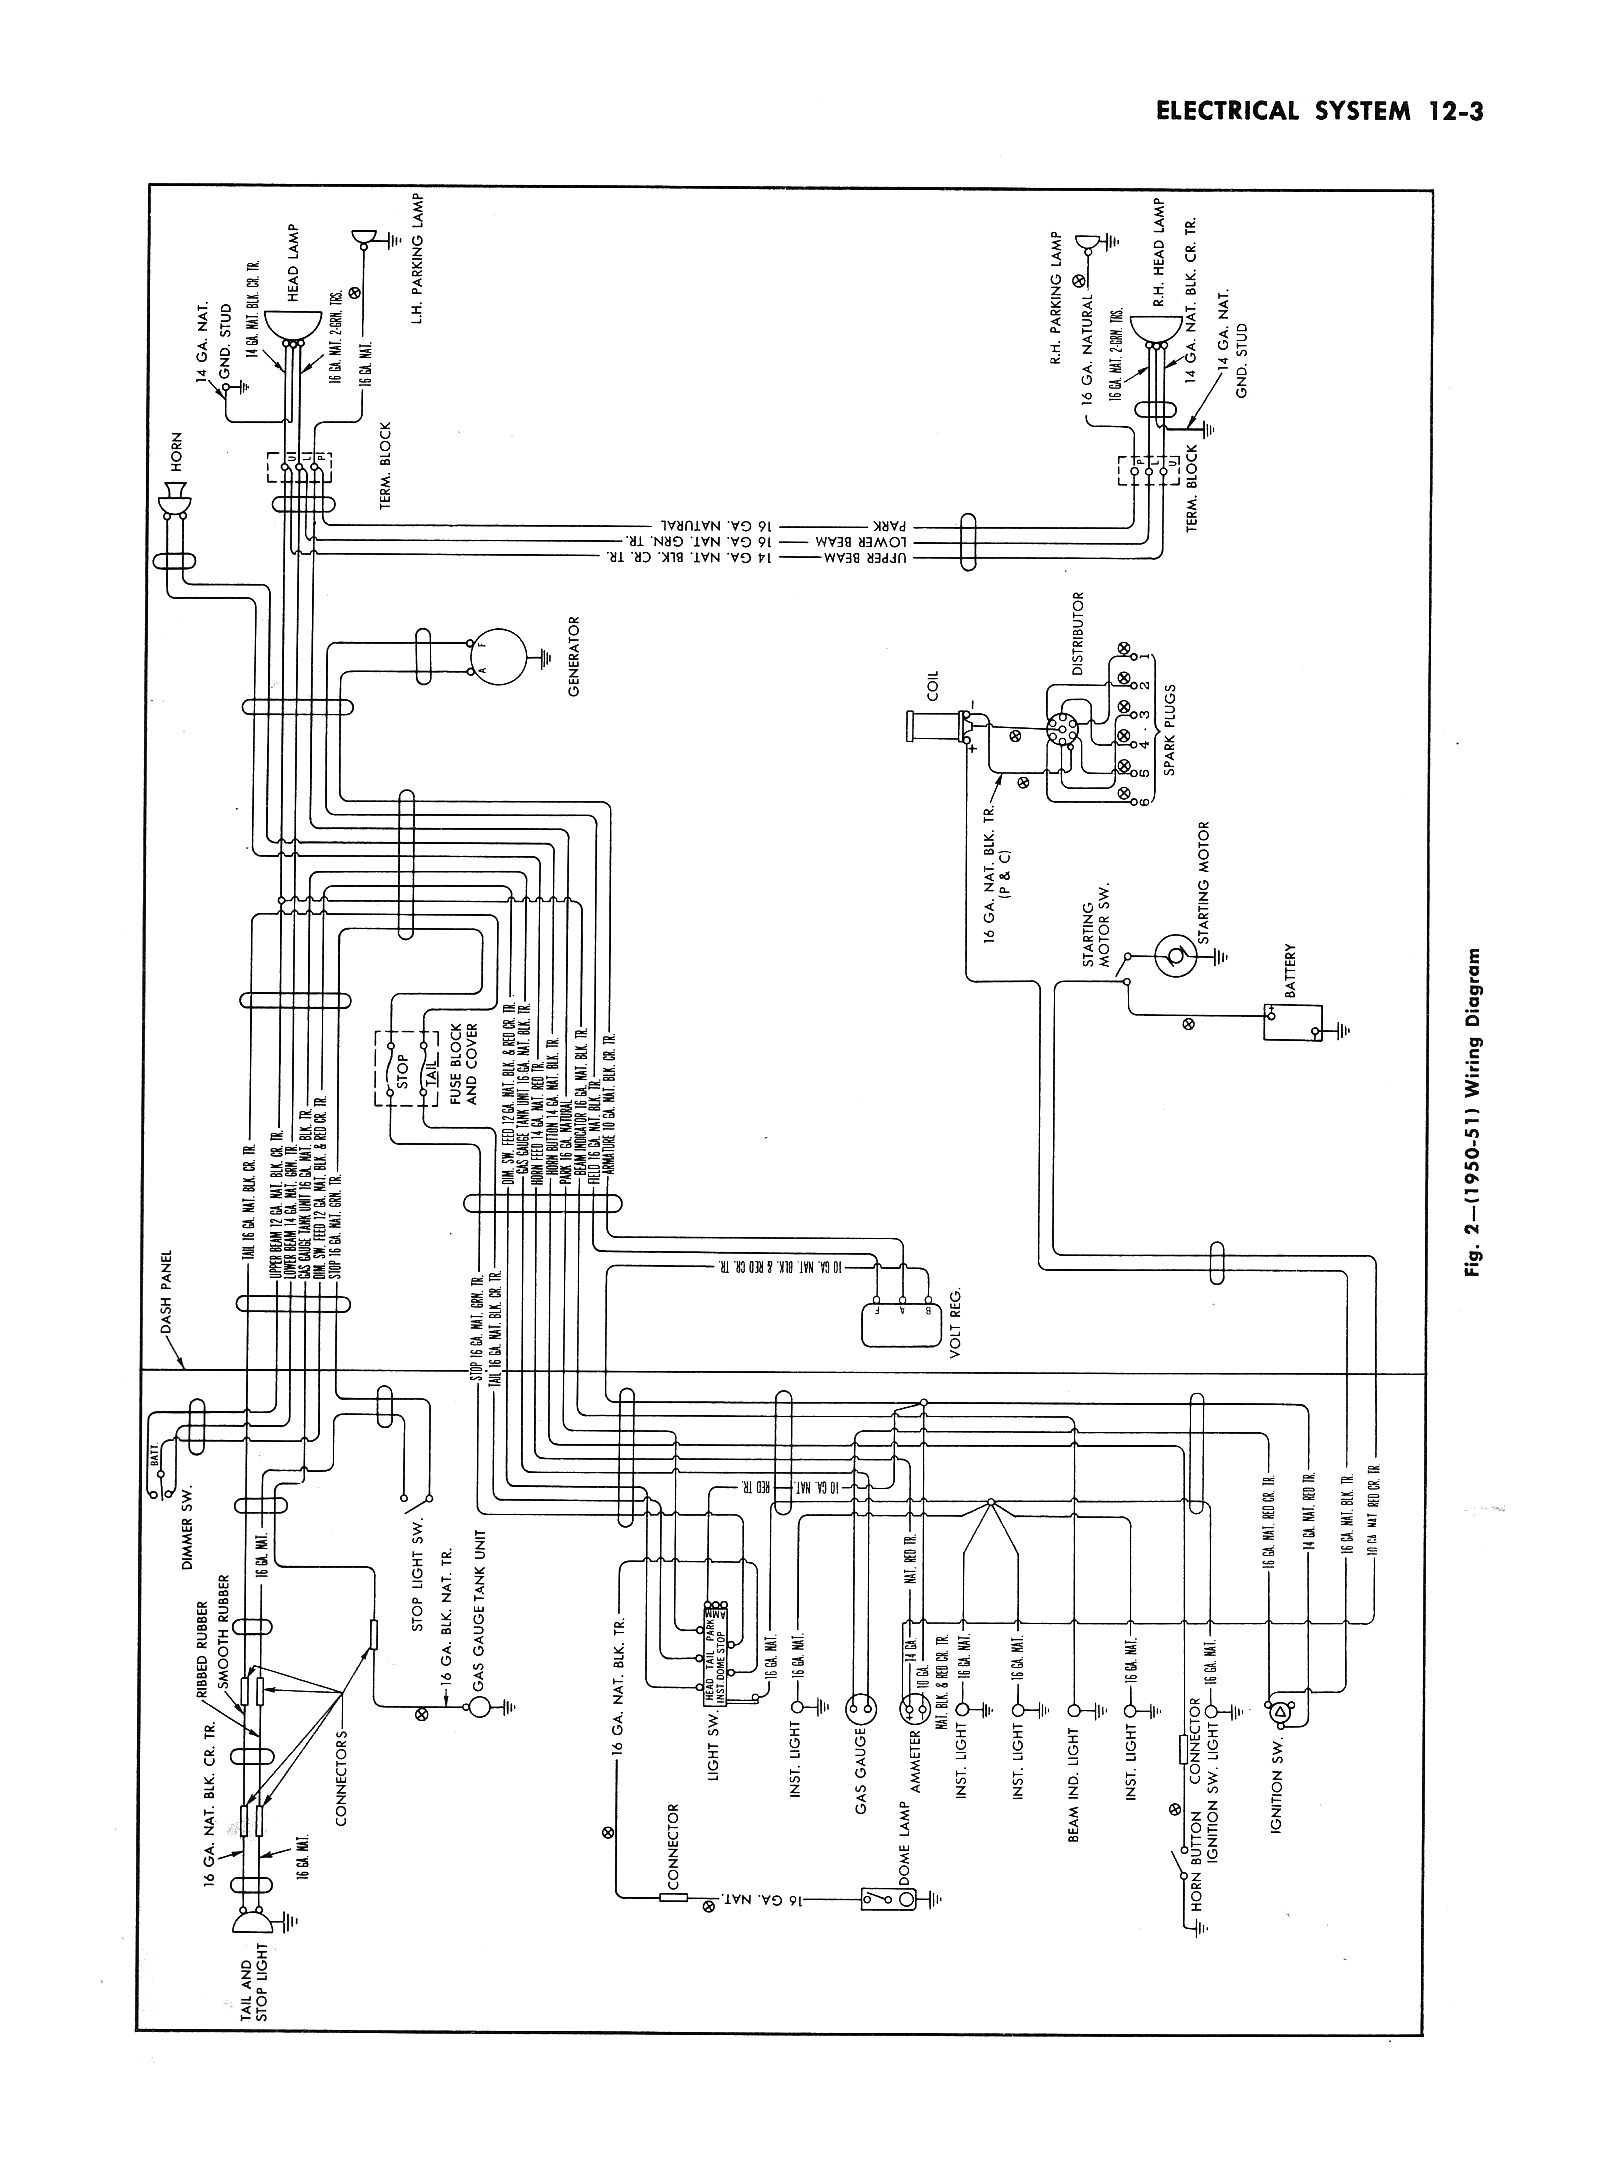 Air Conditioner Wiring Diagram 85 C10 Diagrams 1969 Ac For A Chevy Truck Basic Window